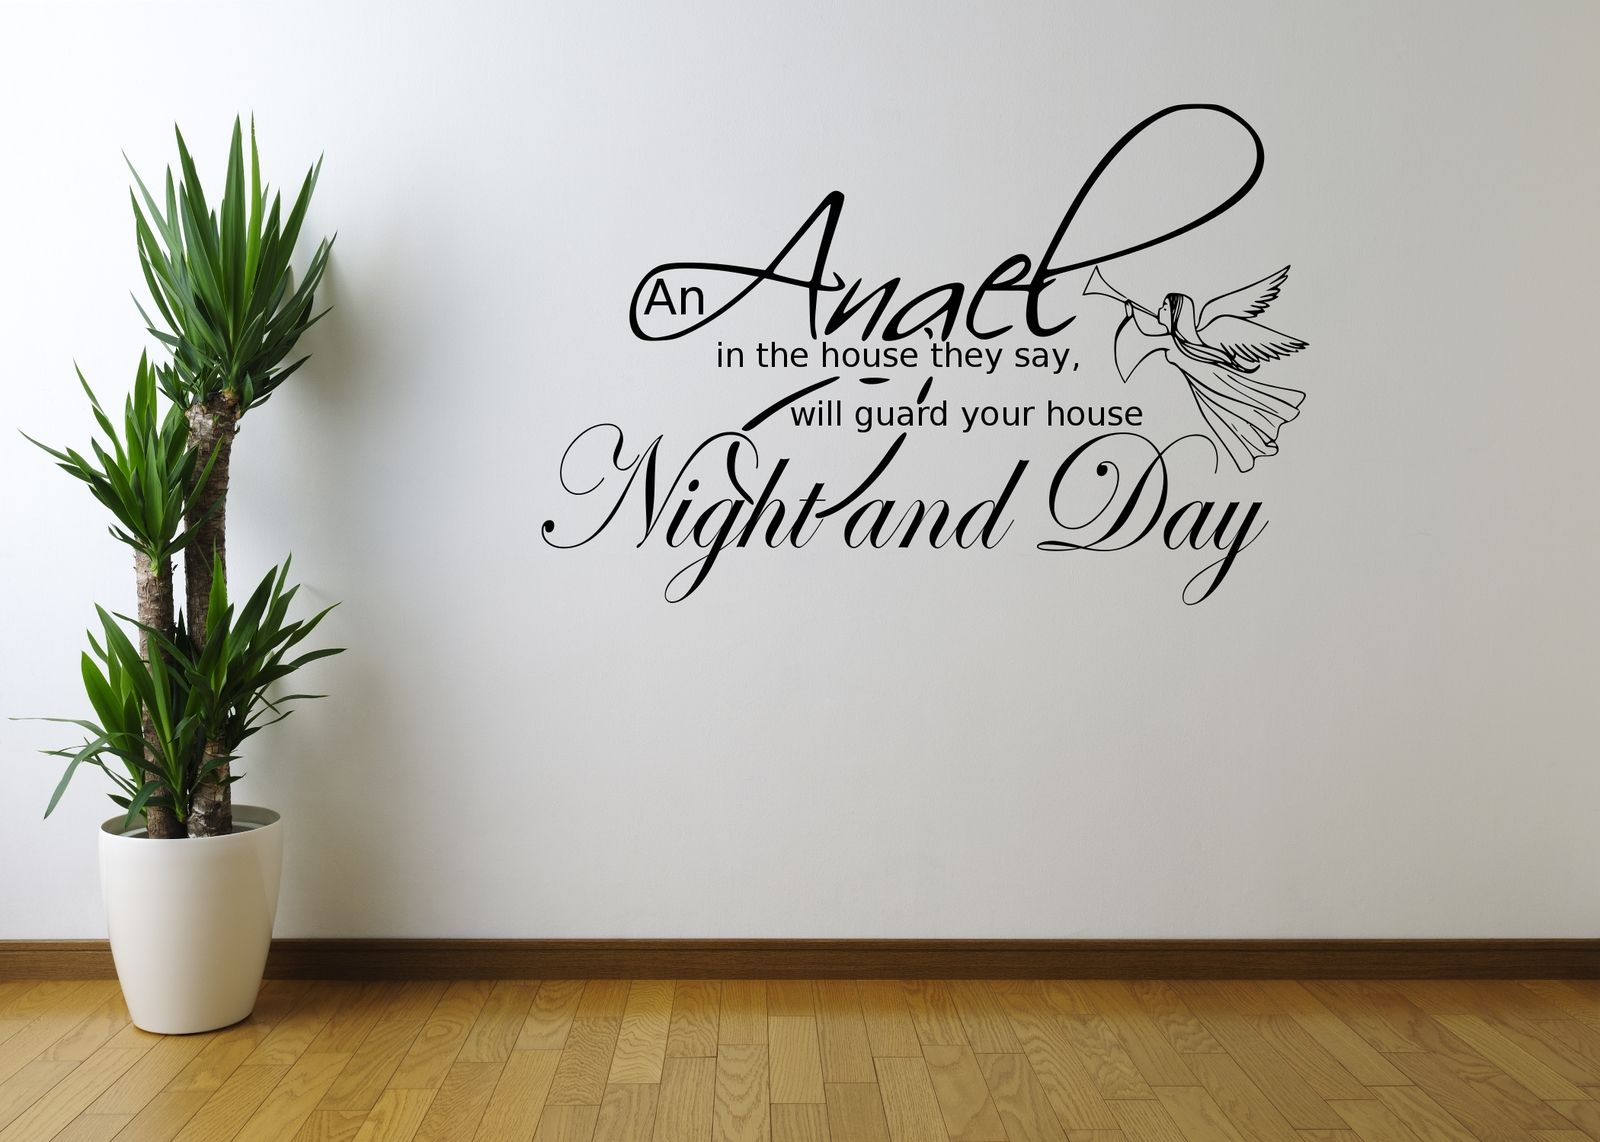 Angel night home quote wall art wall sticker decal mural for Stencil wall art